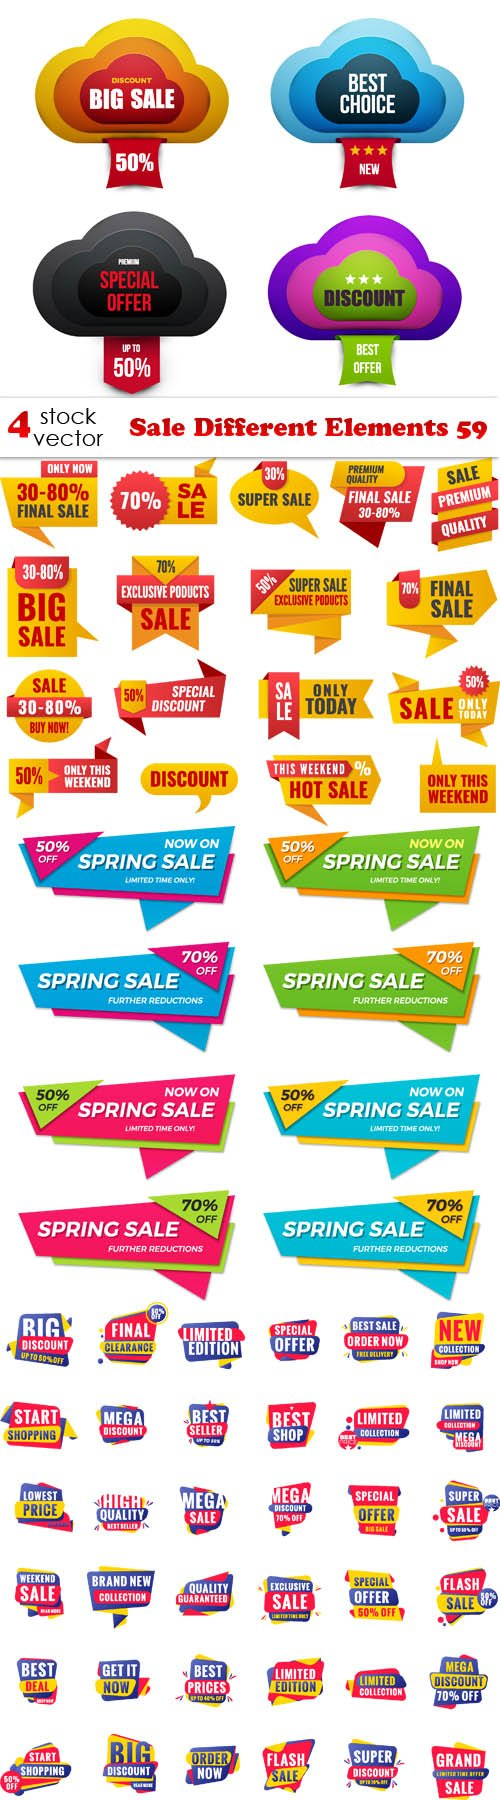 Vectors - Sale Different Elements 59